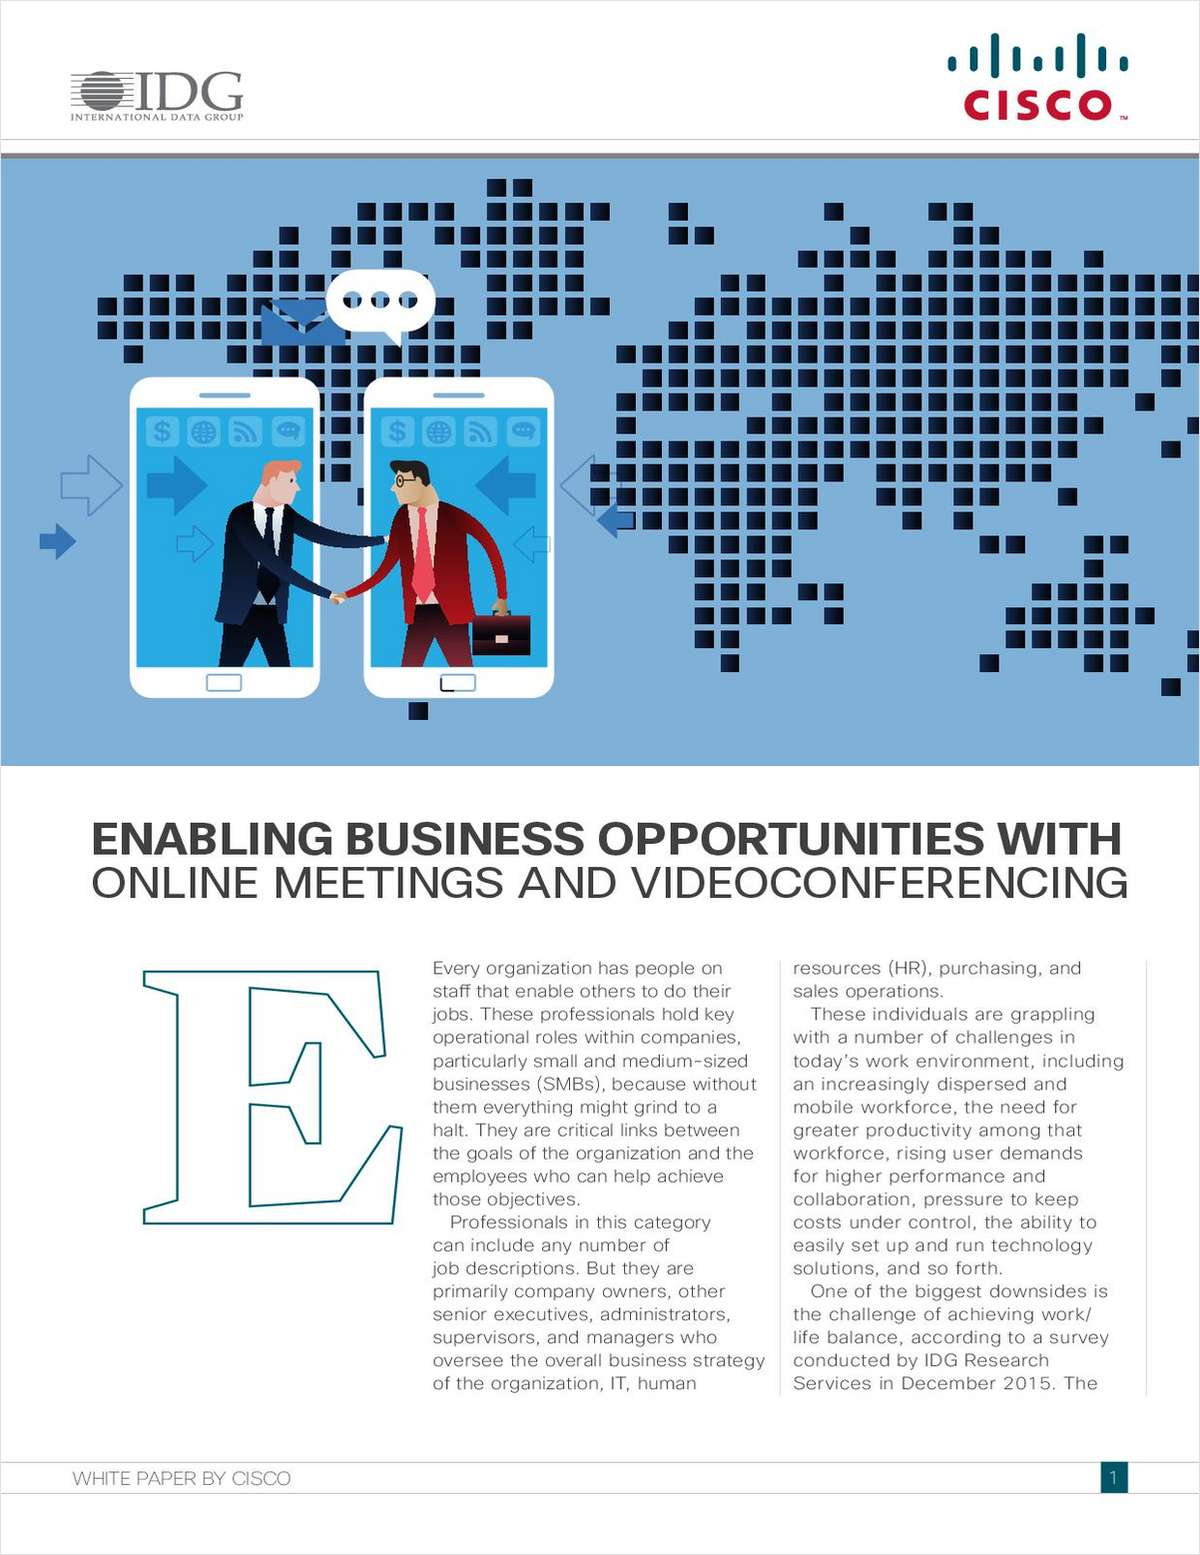 Enabling Business Opportunities with Online Meetings and Videoconferencing